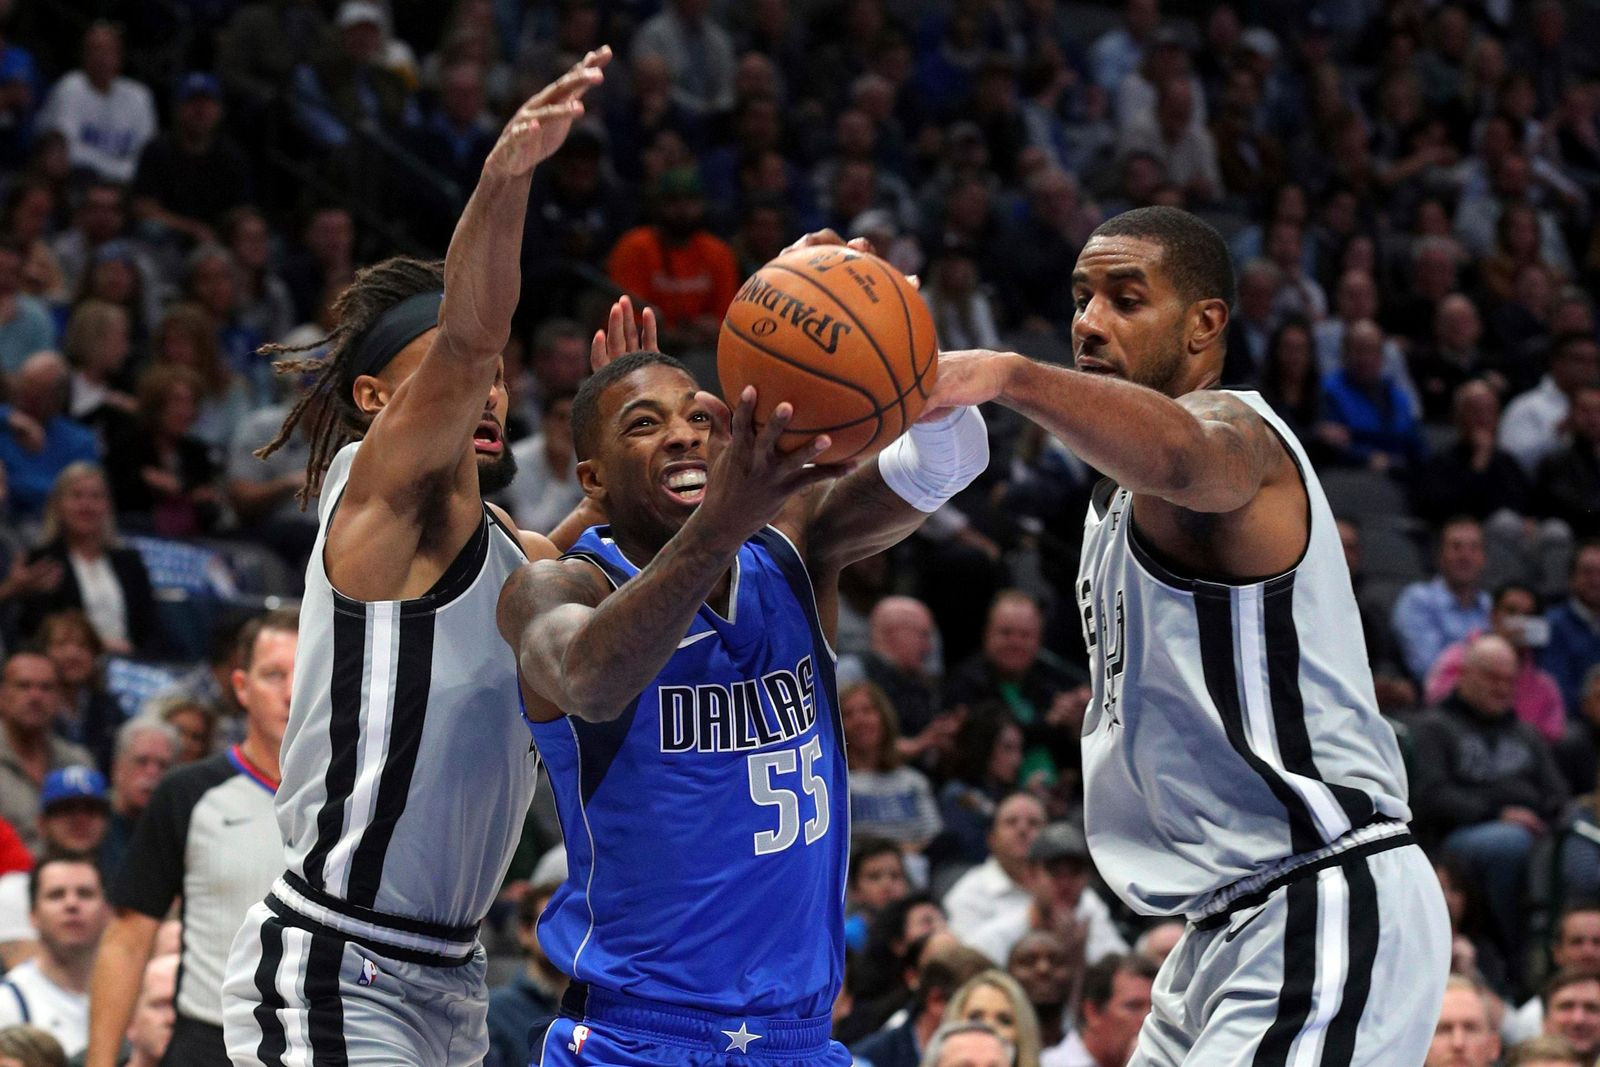 Dallas Mavericks guard Delon Wright (55) tries to drive the ball between San Antonio Spurs guard Patty Mills (8) and San Antonio Spurs center LaMarcus Aldridge (12) in the first half in an NBA basketball game Monday, Nov. 18, 2019, in Dallas. (AP Photo/Richard W. Rodriguez)